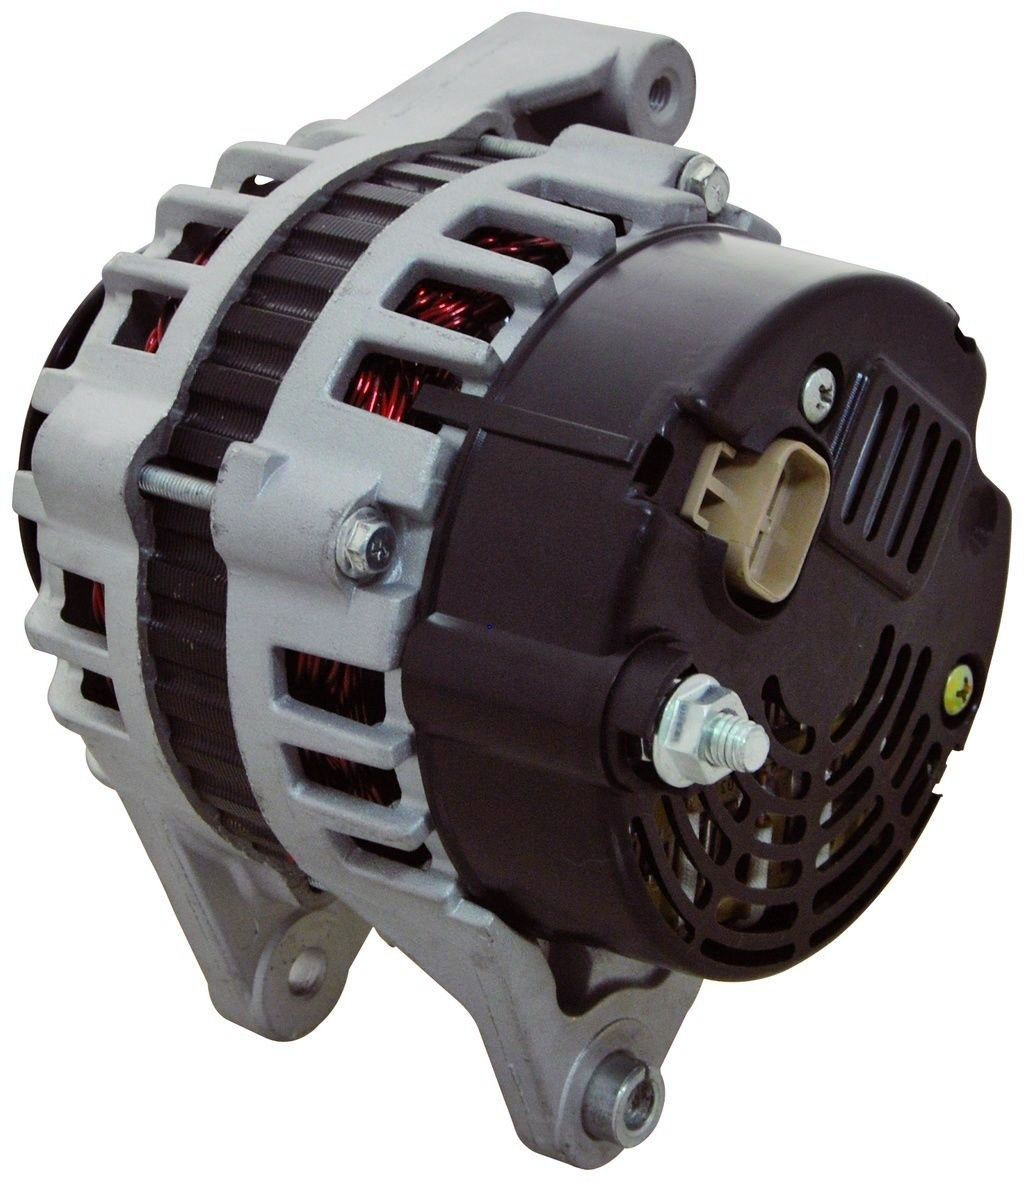 Details about Alternator BOBCAT T190 T200 T250 T300 T320 T550 T590